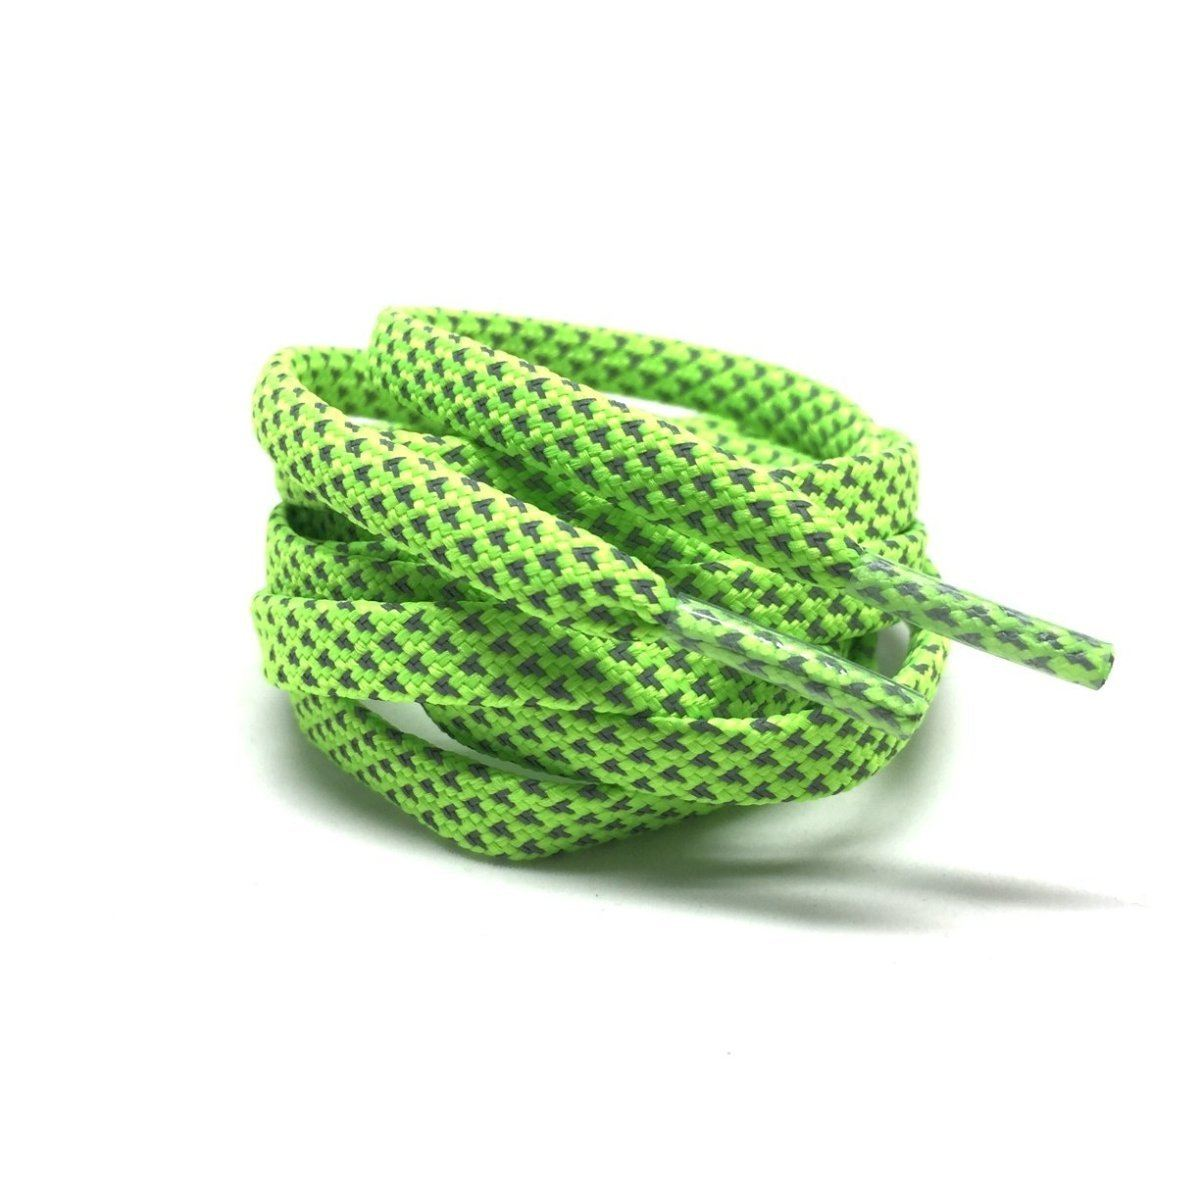 Flat Thin - 3M Reflective Flat Laces - Neon Green